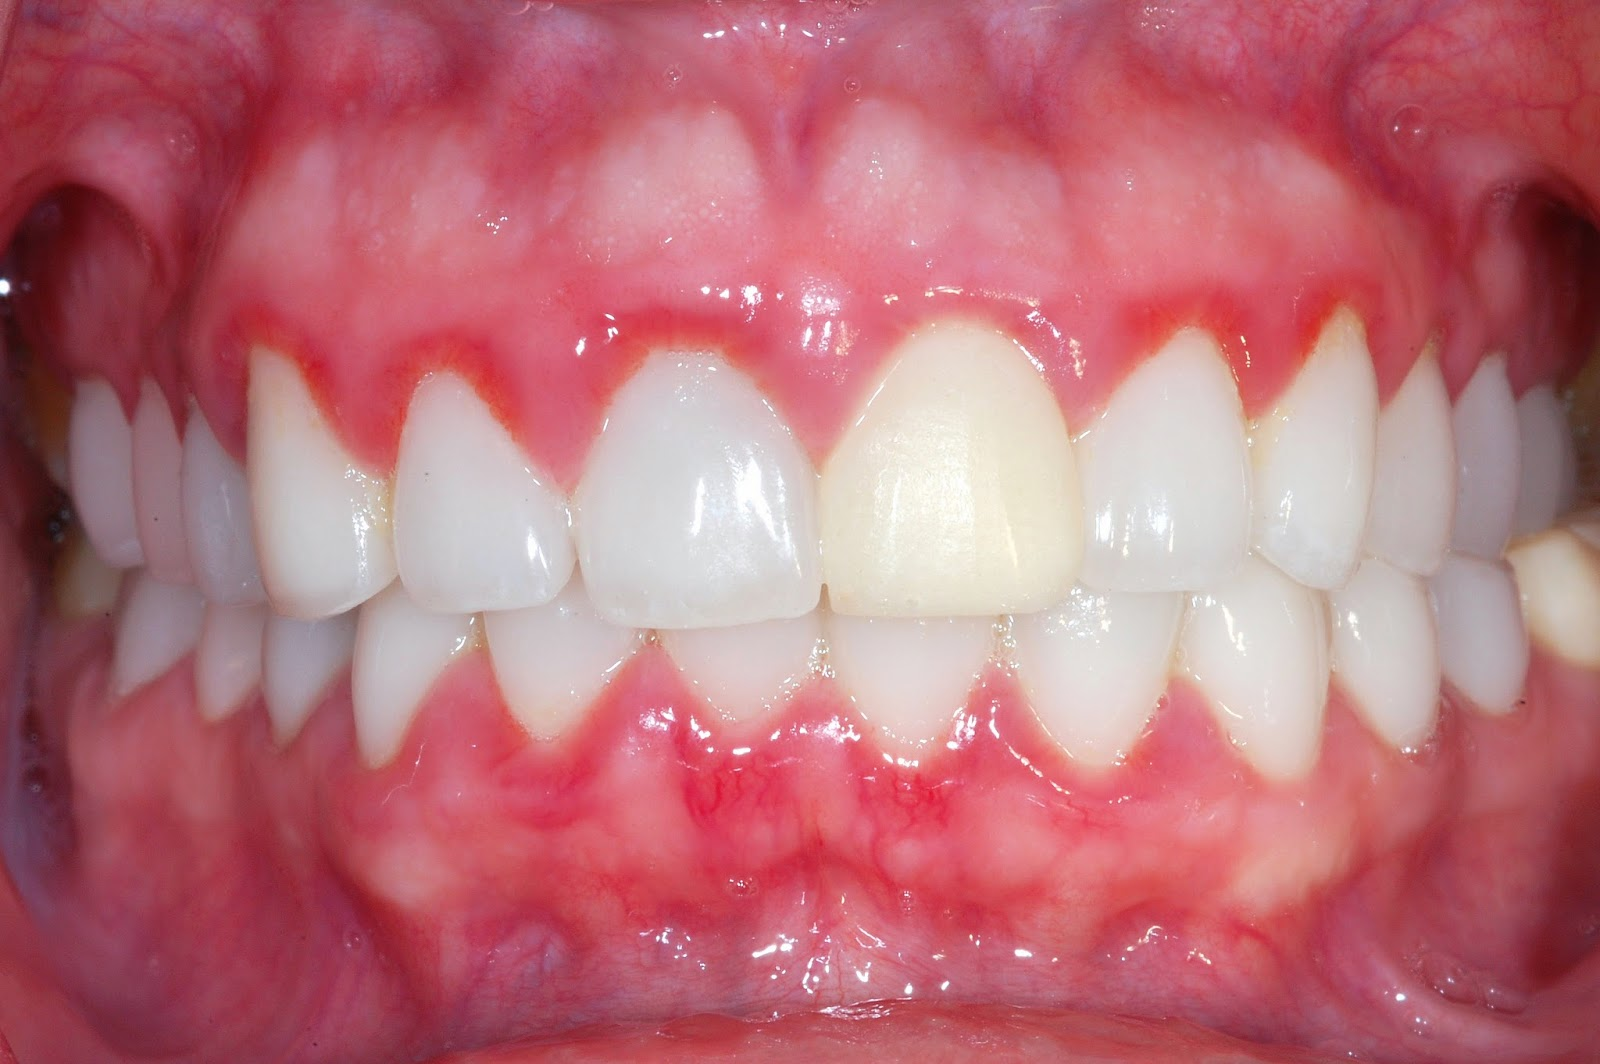 How to get rid of bad breath from gingivitis naturally